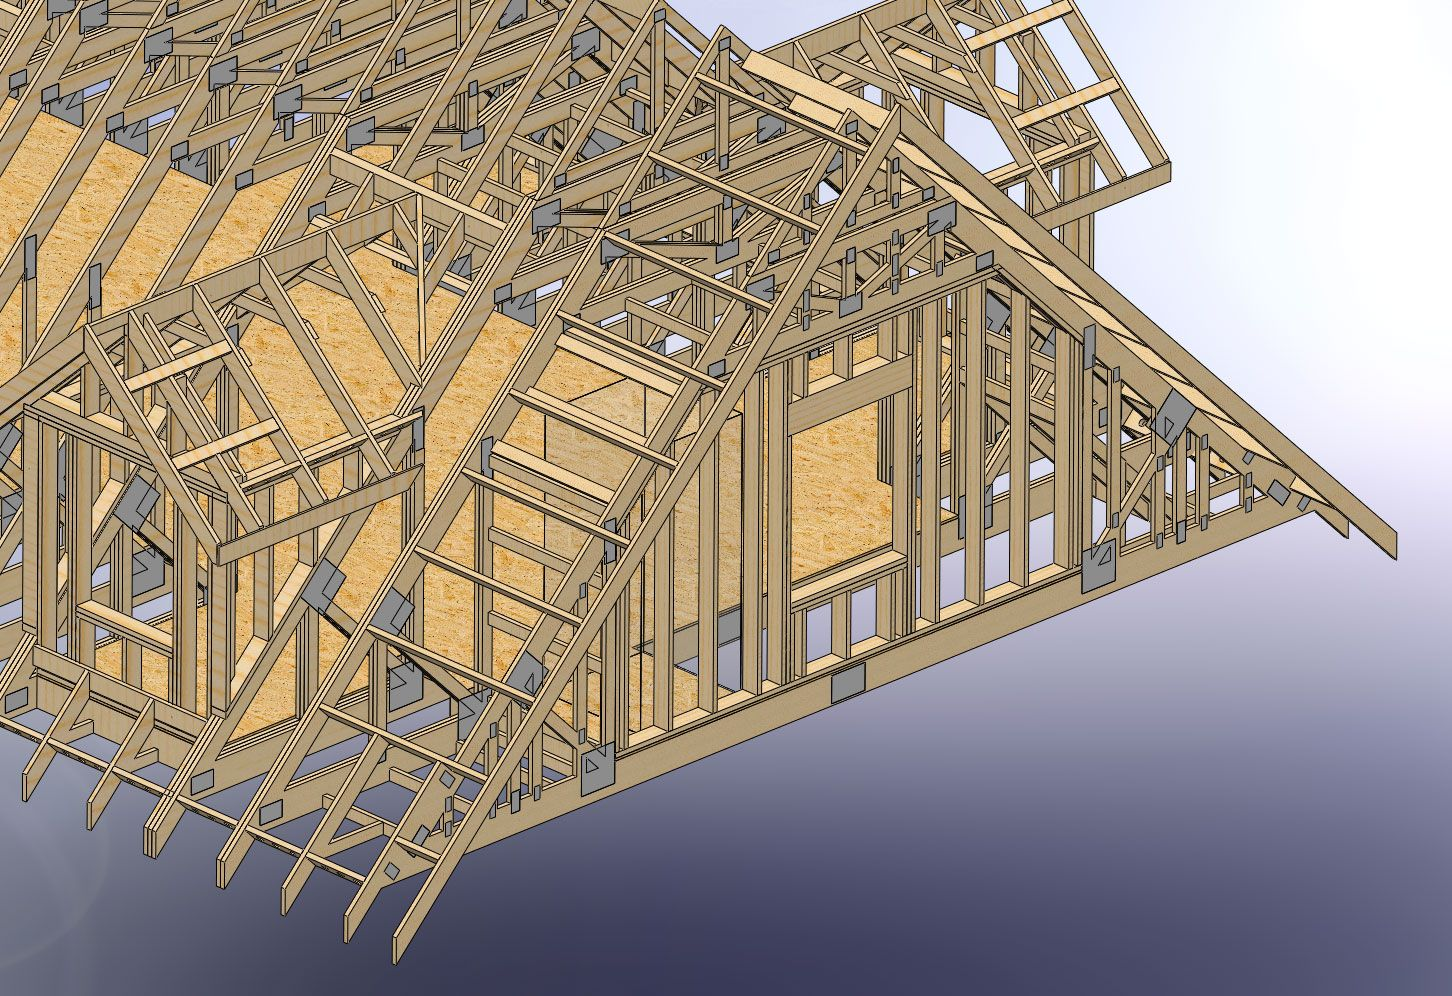 48x28 garage with attic and six dormers carpentry for Roof dormer design plans